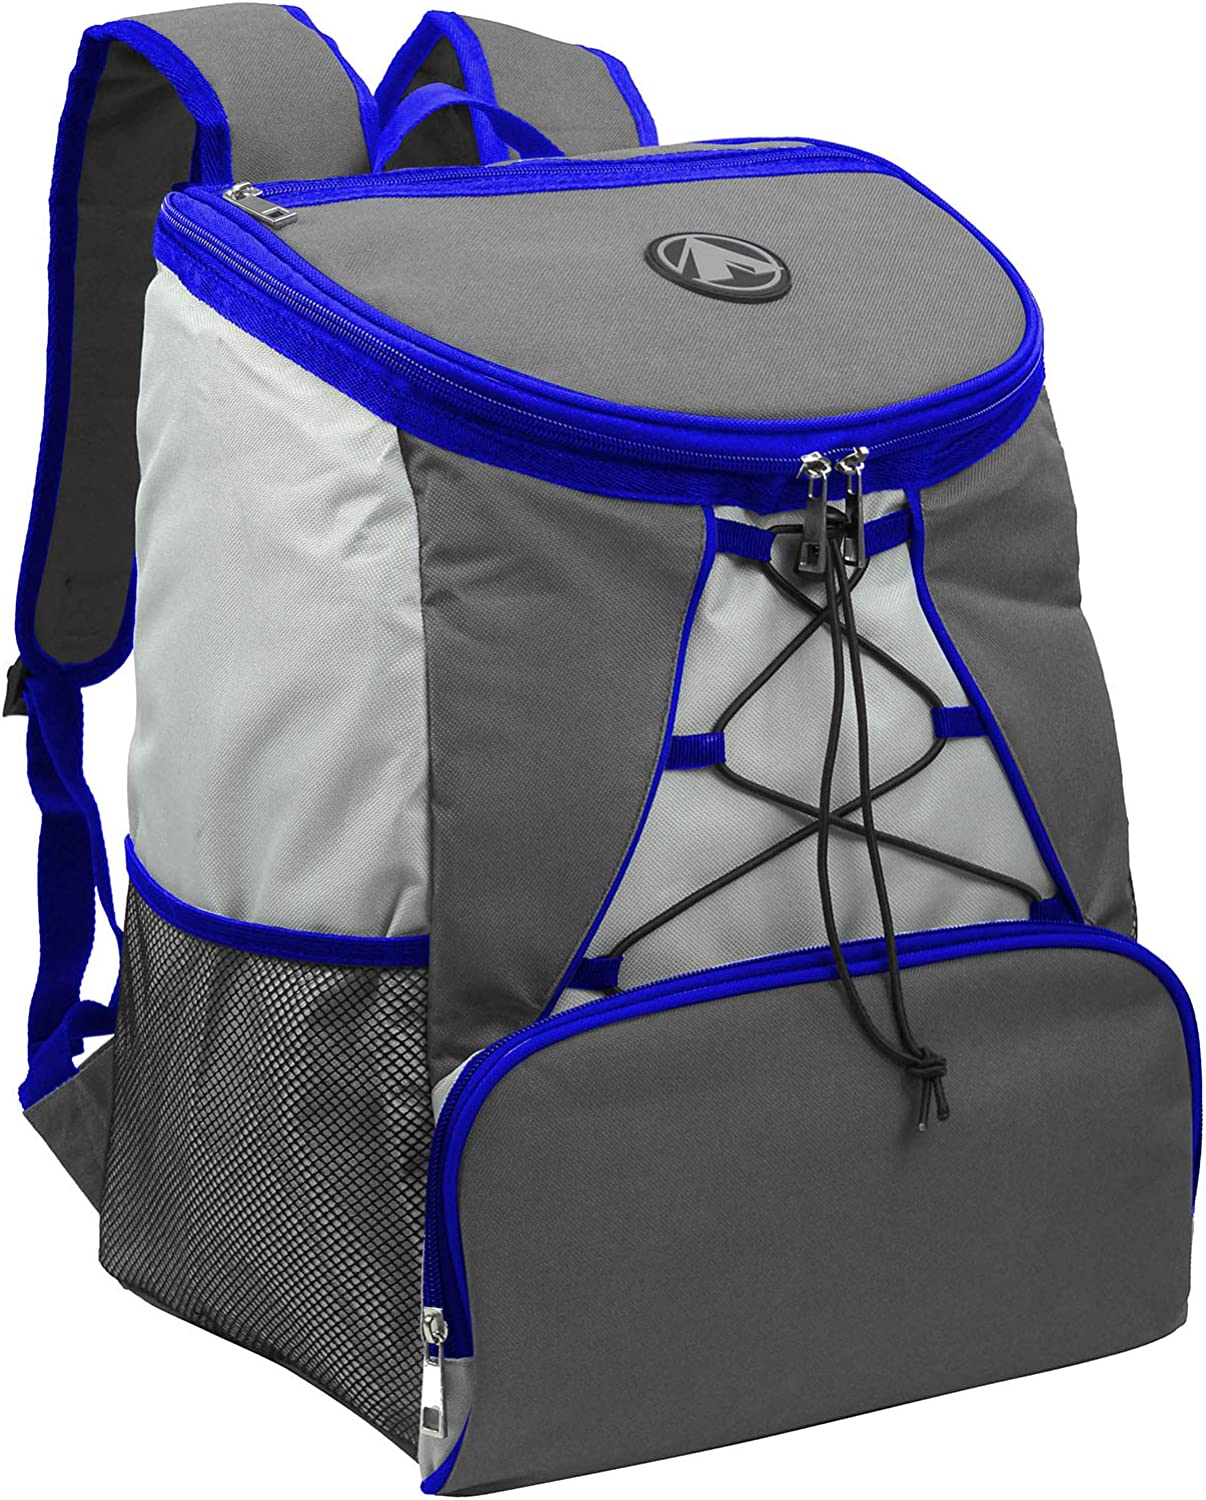 GigaTent Brand Cheap Sale Venue Fully Insulated Interior 1 year warranty Cooler Backpack 600D Adjustabl